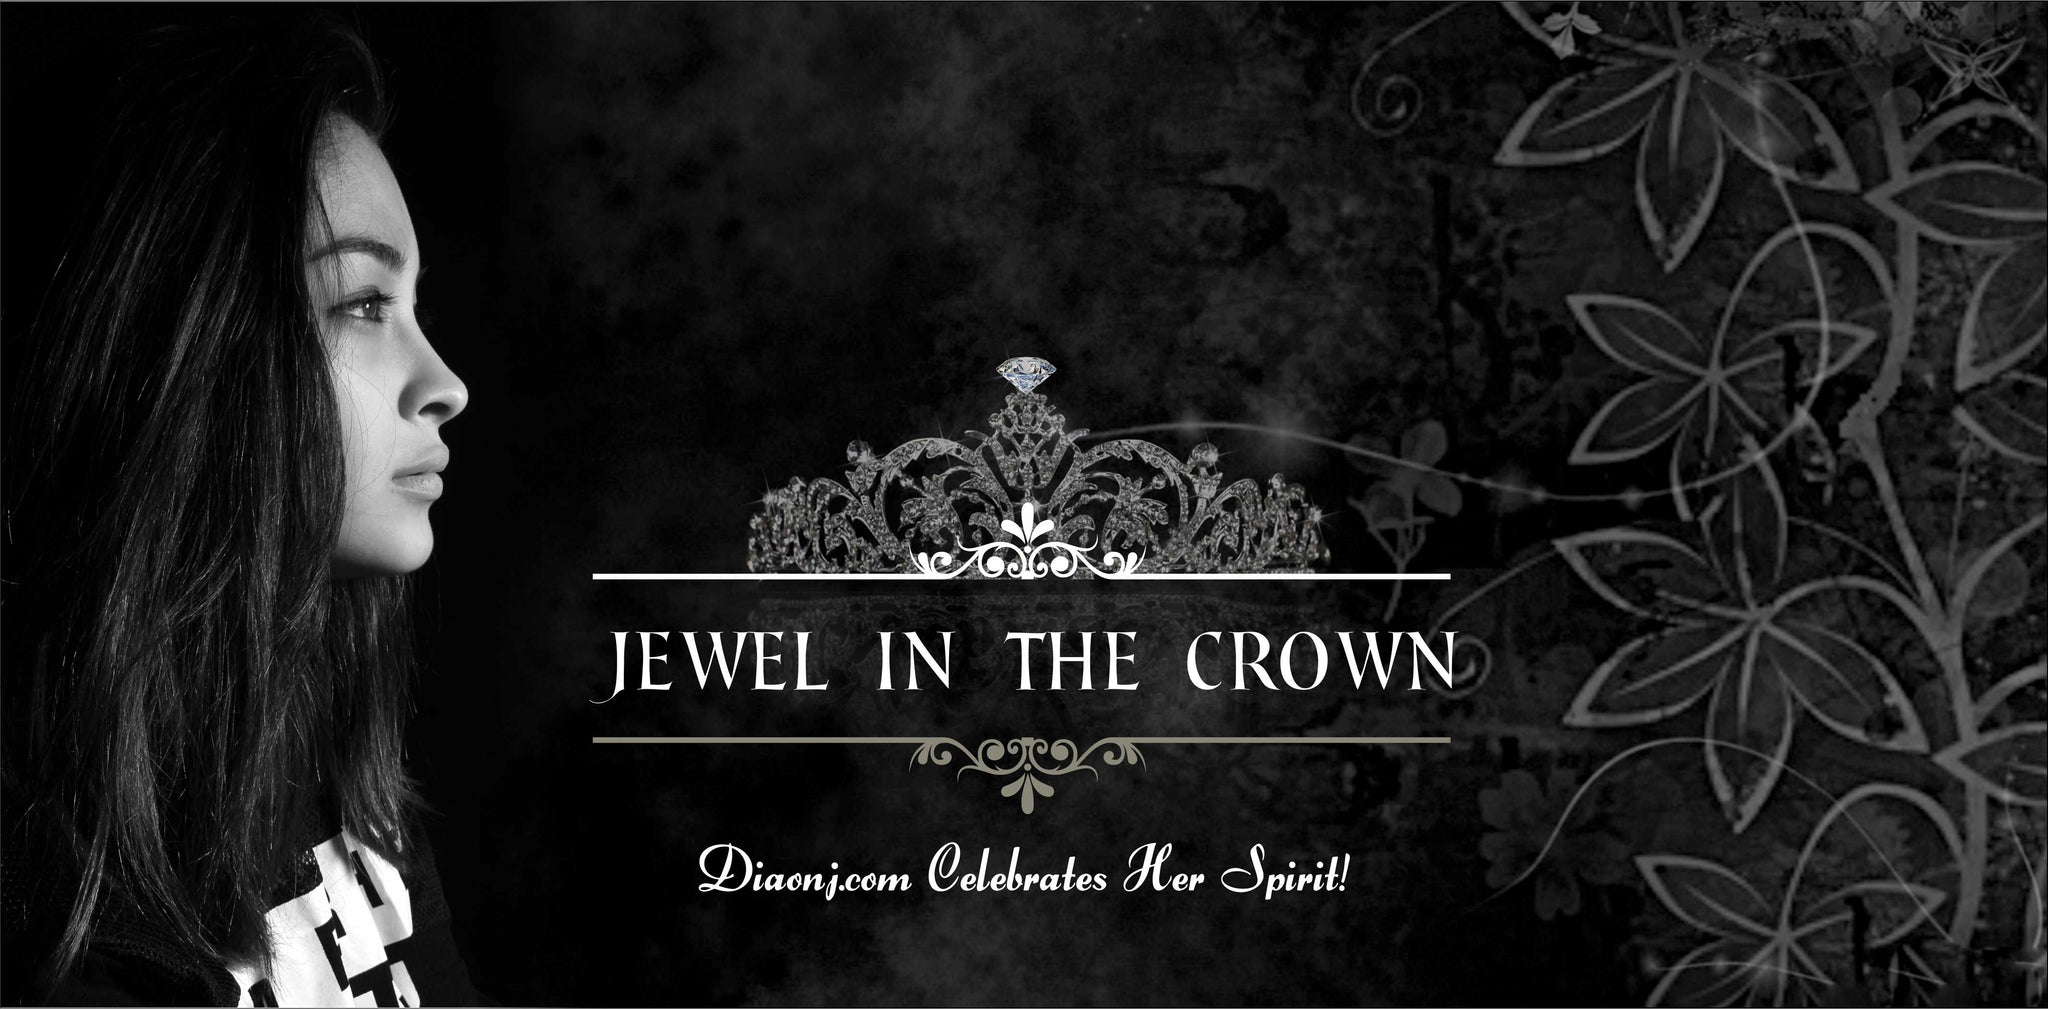 Campaign_JewelinTheCrown